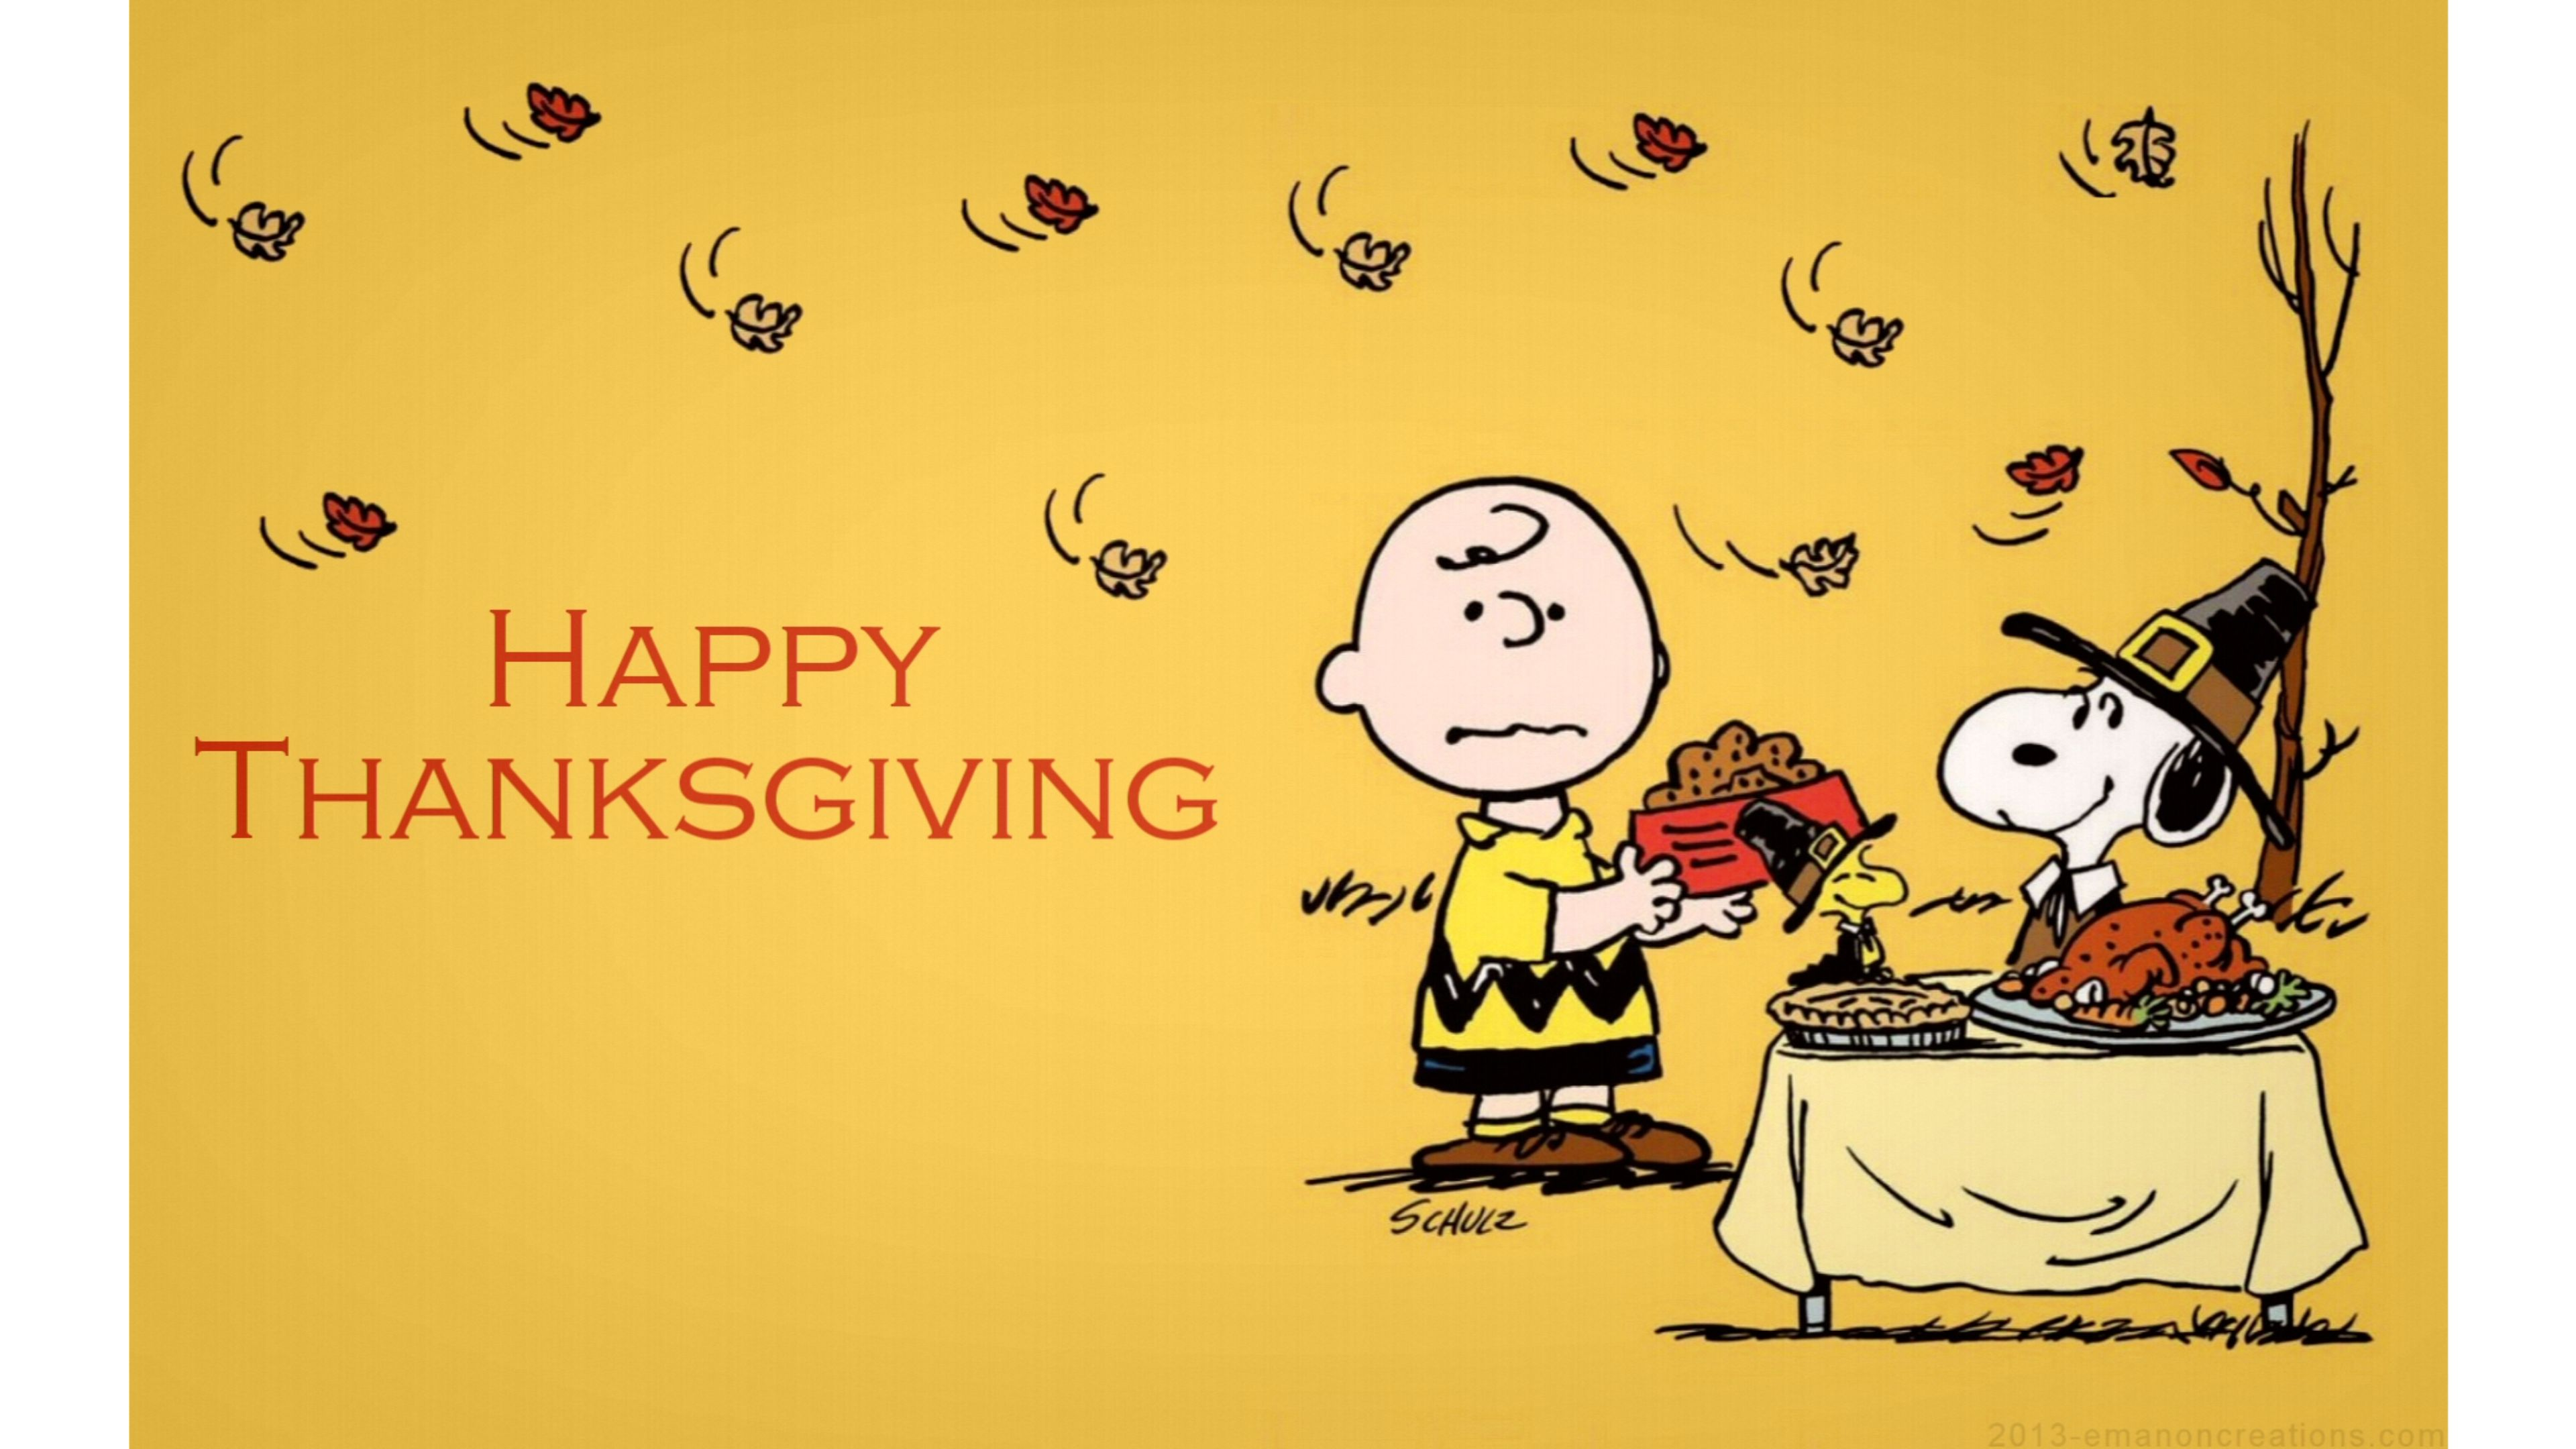 Charlie Brown Thanksgiving Wallpapers.